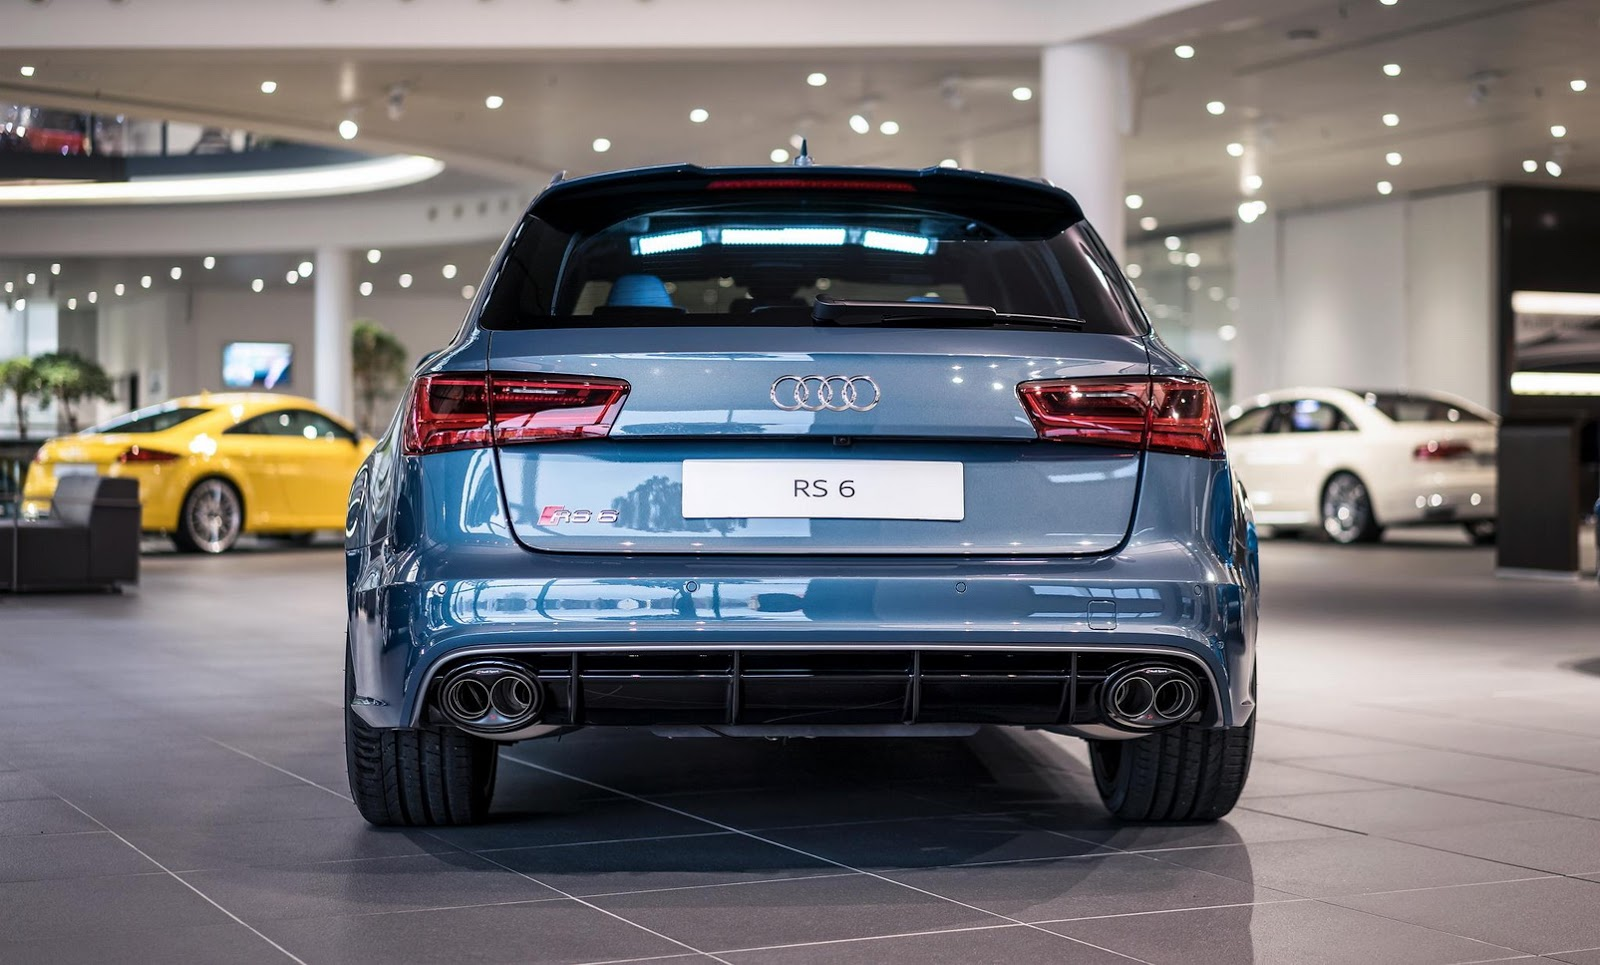 Polar Blue Metallic Rs6 Avant By Audi Exclusive Looks Cool